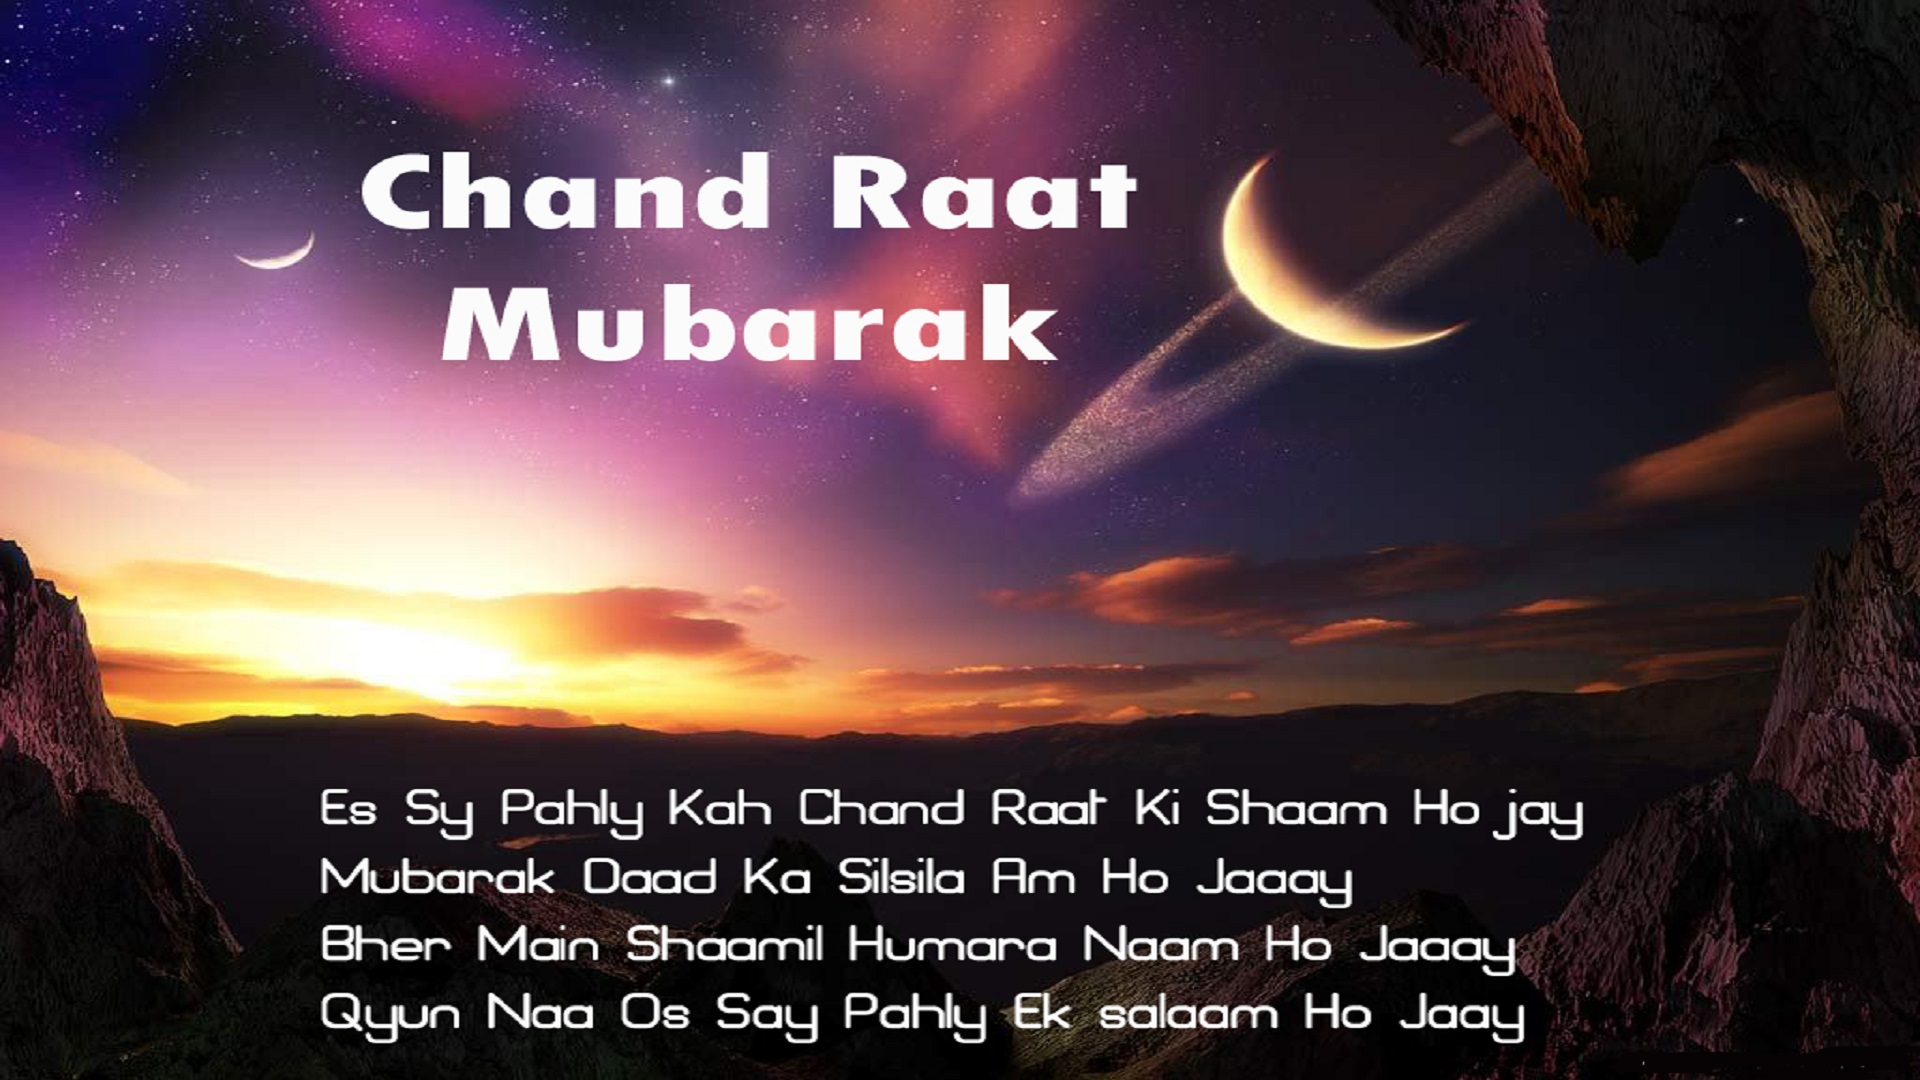 Chaand Raat Shayari In Hindi Sms With Pictures Free Hd Wallpapers